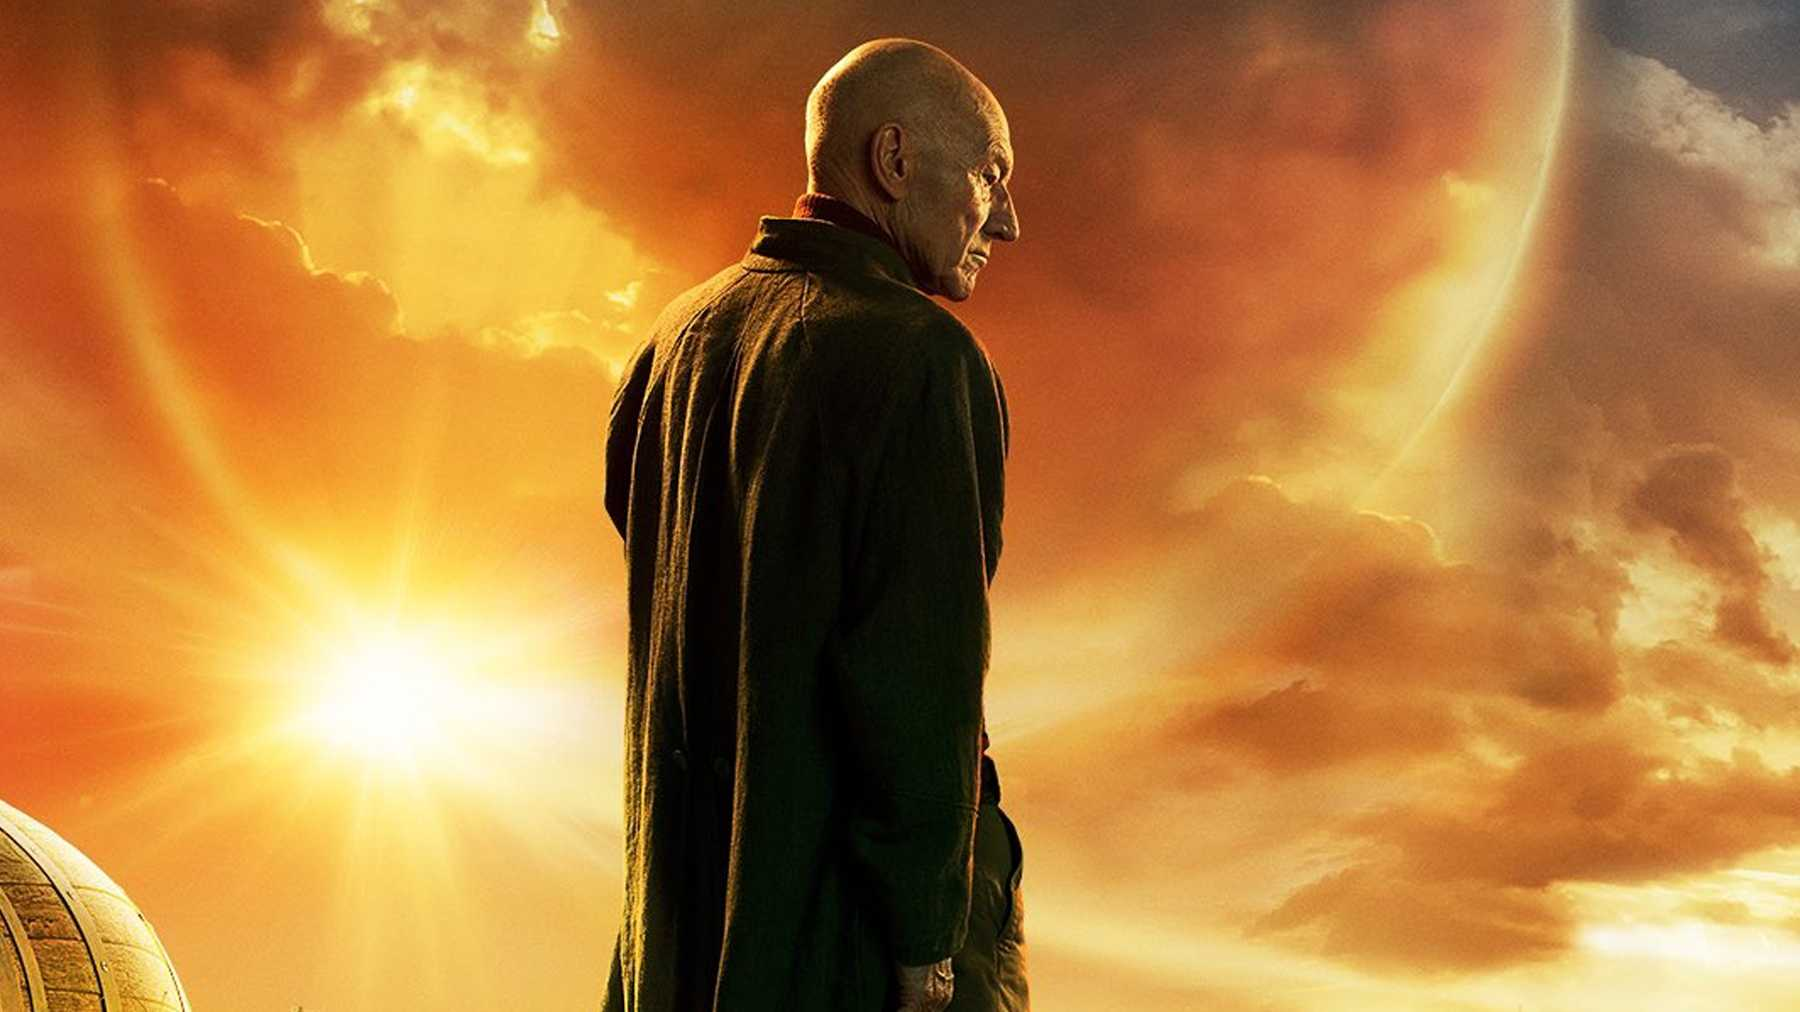 picard does the over the shoulder poster look